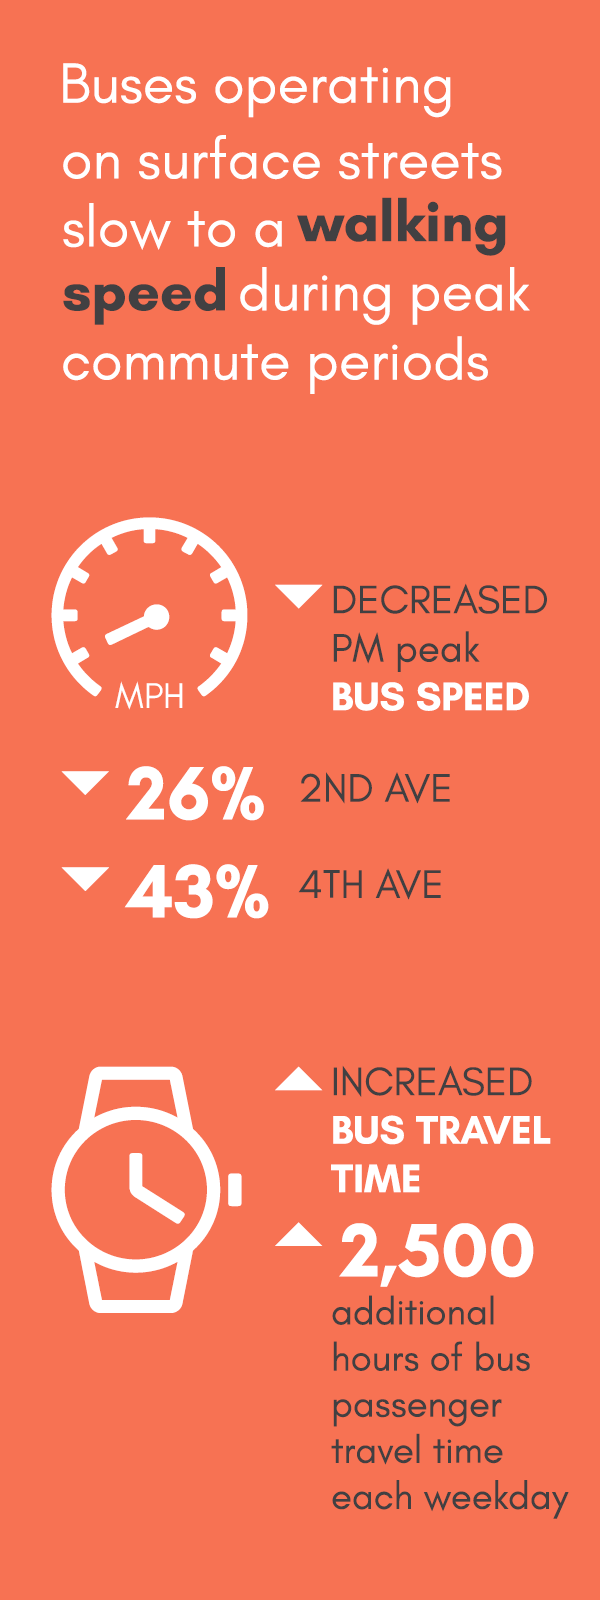 Buses operating on surface streets slow to a walking speed during peak commute periods. Decreased PM peak bus speed equals 26% on 2nd avenue and 43% on 4th avenue. Increased bus travel time: 2,500 additional hours of bus passenger travel time each weekday.